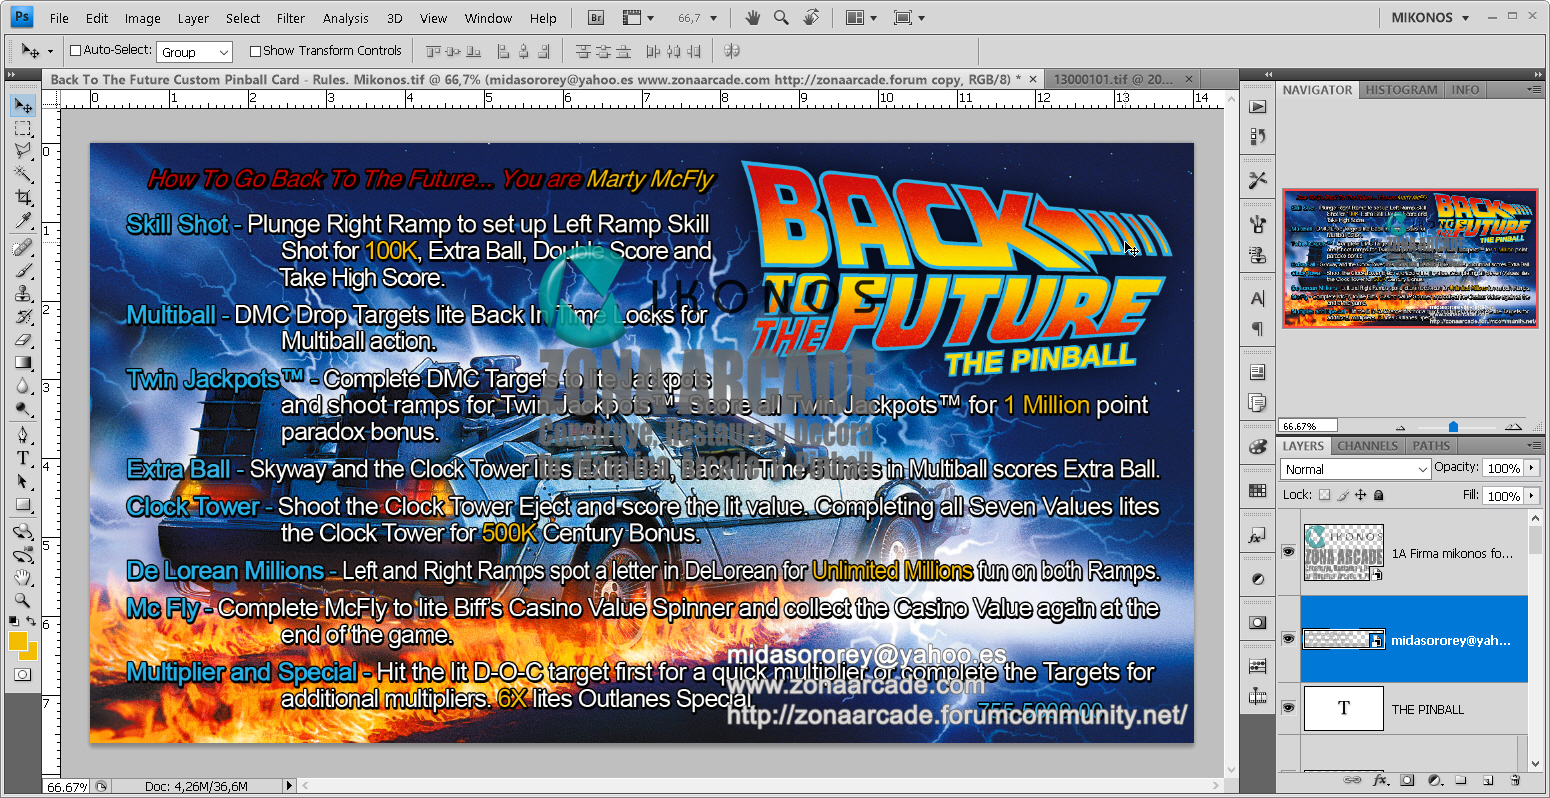 Back%20To%20The%20Future%20Custom%20Pinball%20Card%20-%20Rules.%20Mikonos1.jpg